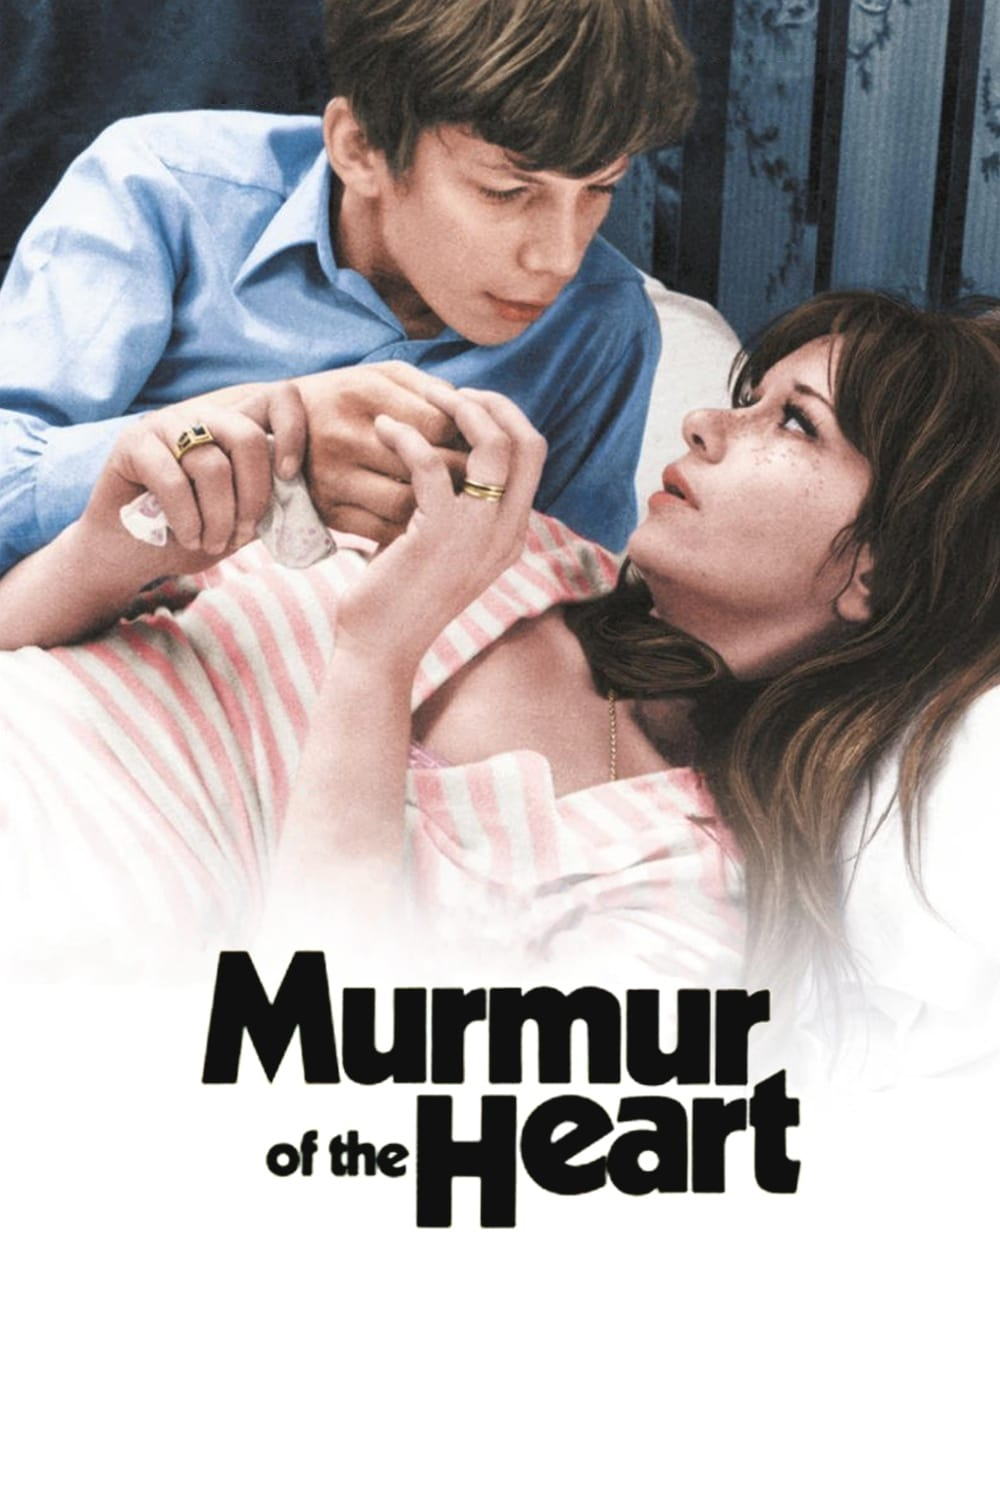 Murmur of the Heart (1971)